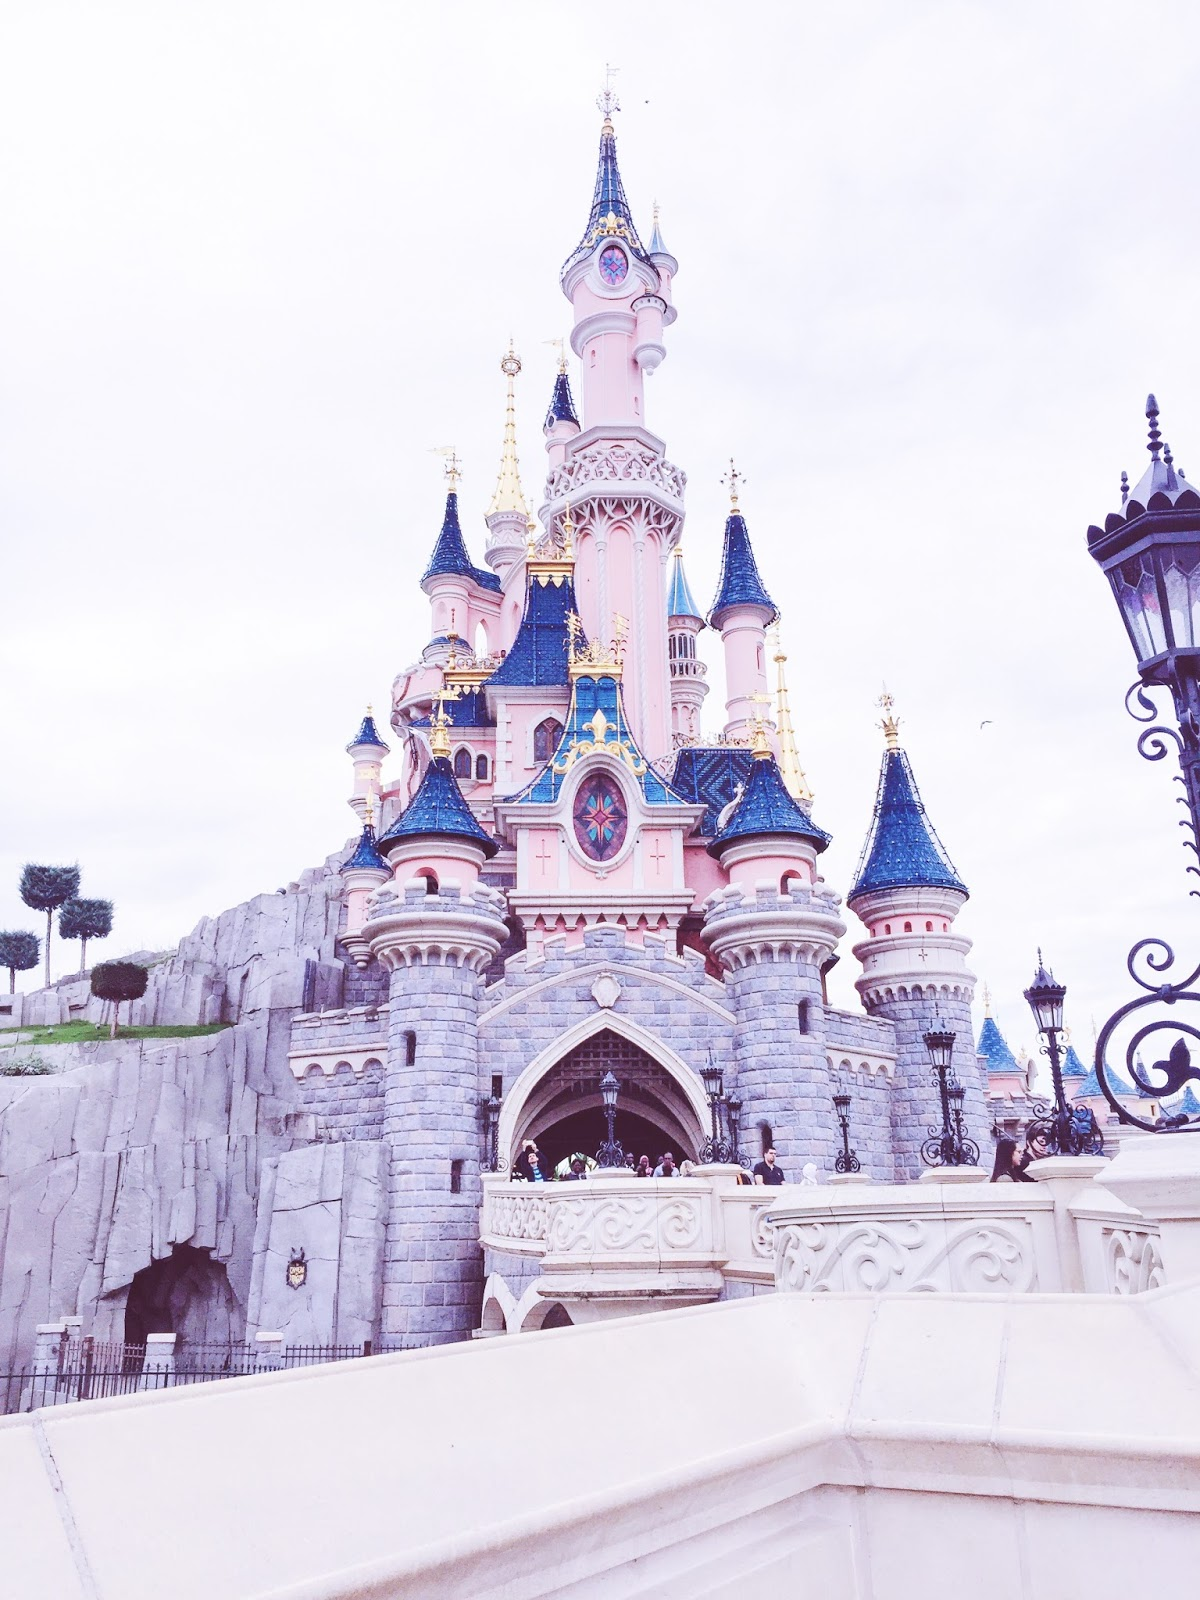 Travel, Lifestyle, Disneyland Paris, Disney holidays, disneyland paris review, things to do at disneyland paris, things to do at disneyland, primark, disney castle, disney bloggers,